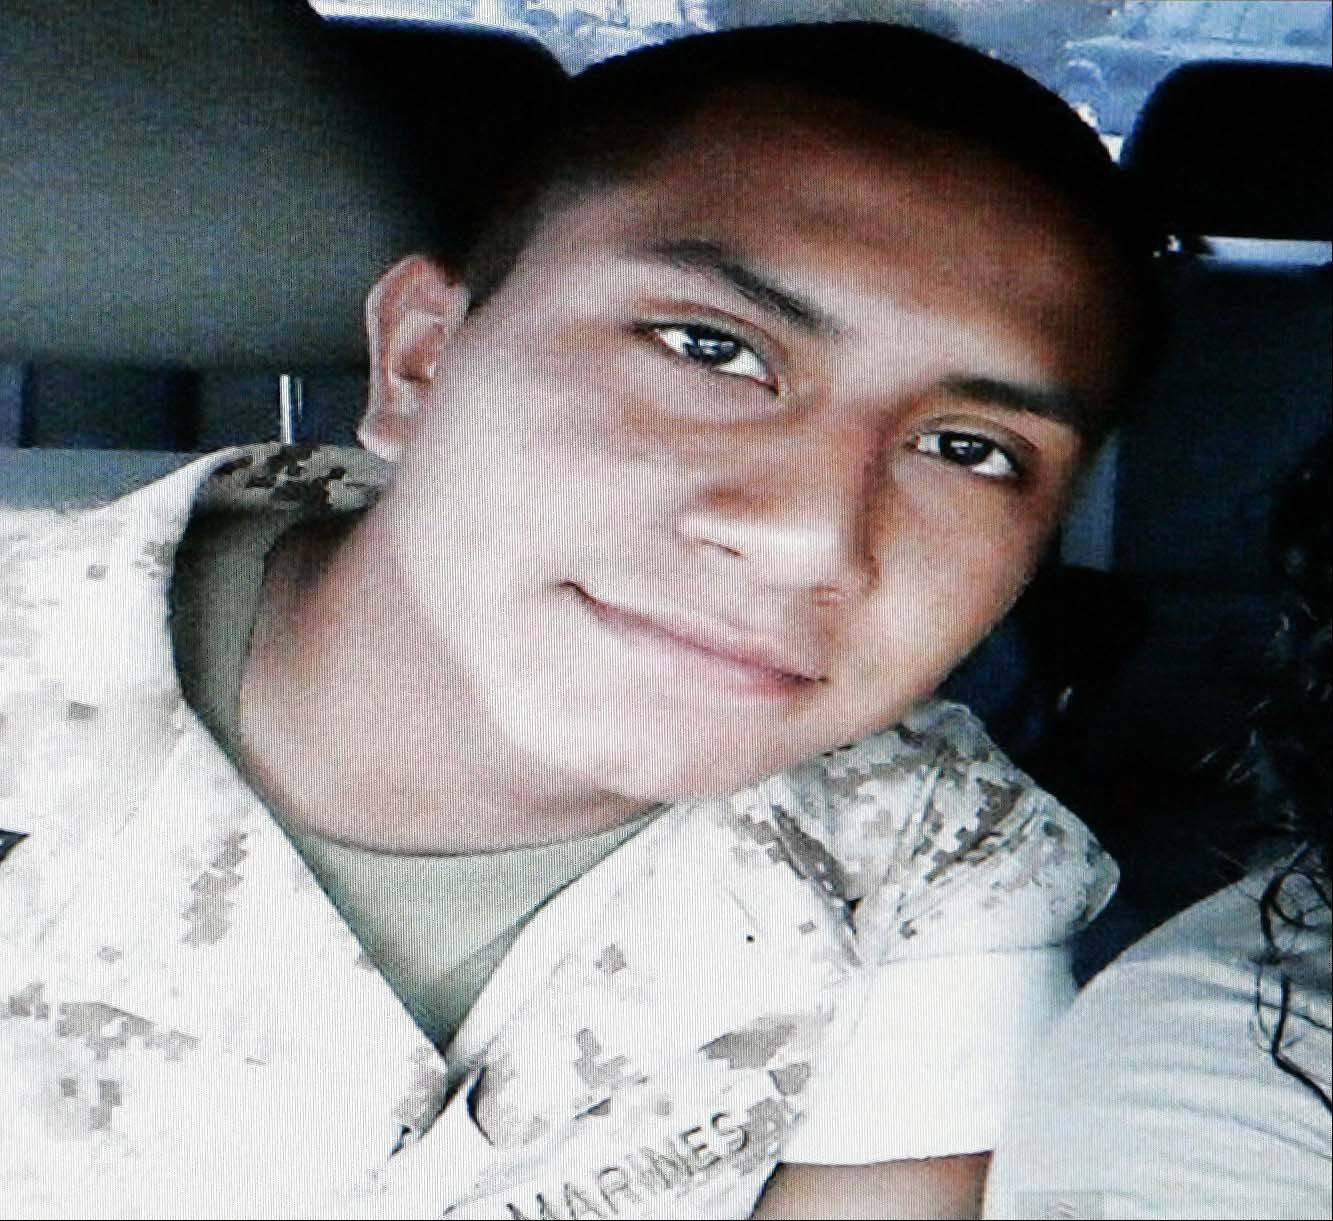 SUBMITTED PHOTOAlex Martinez, a Marine from Elgin who was killed last week in Afghanistan.